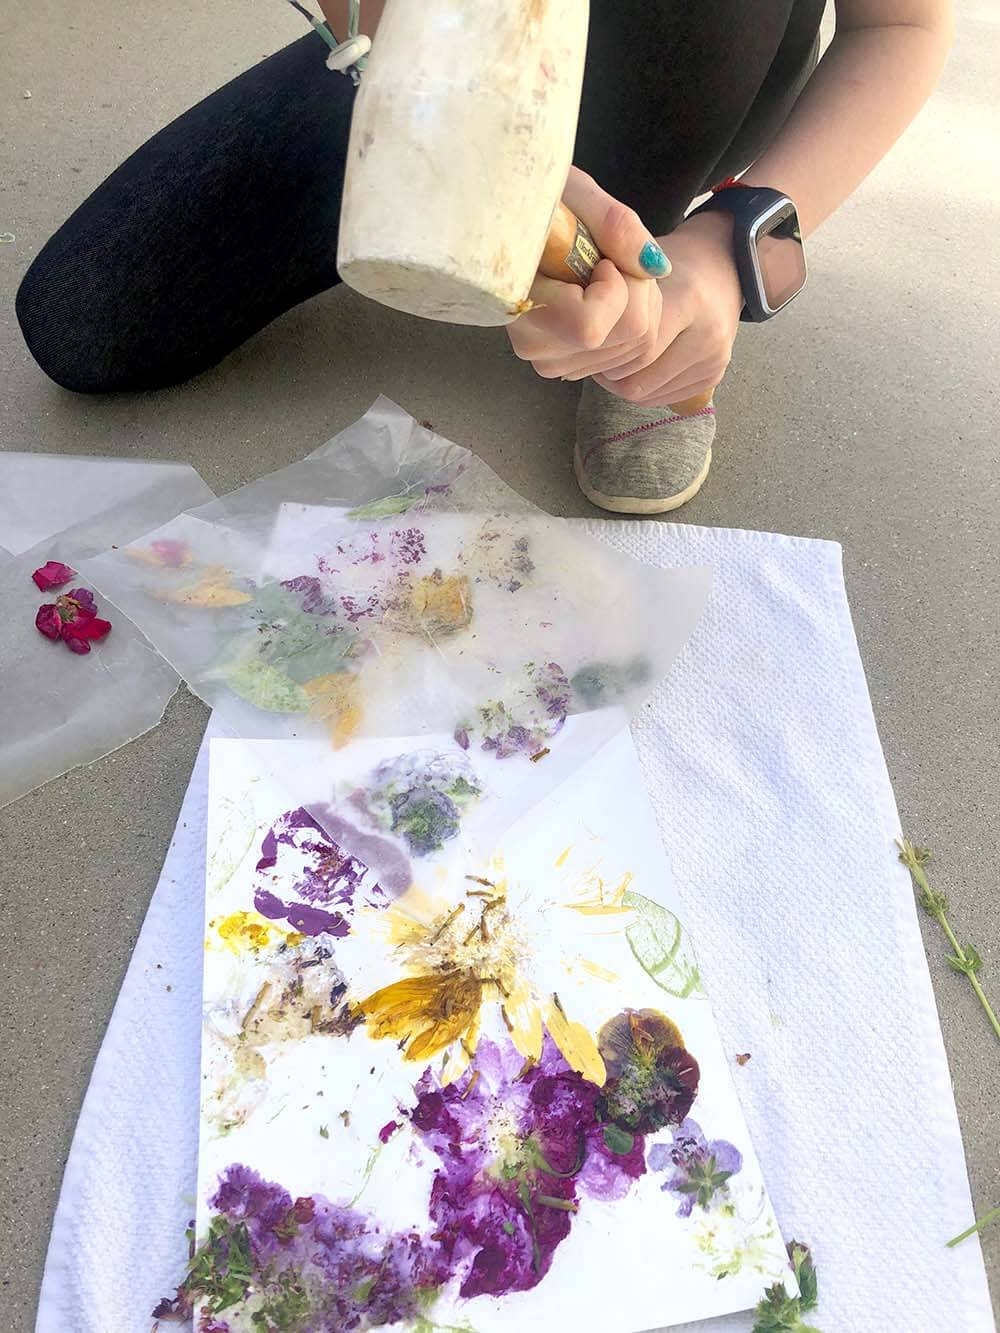 Hammering flowers through wax paper to create a floral art print